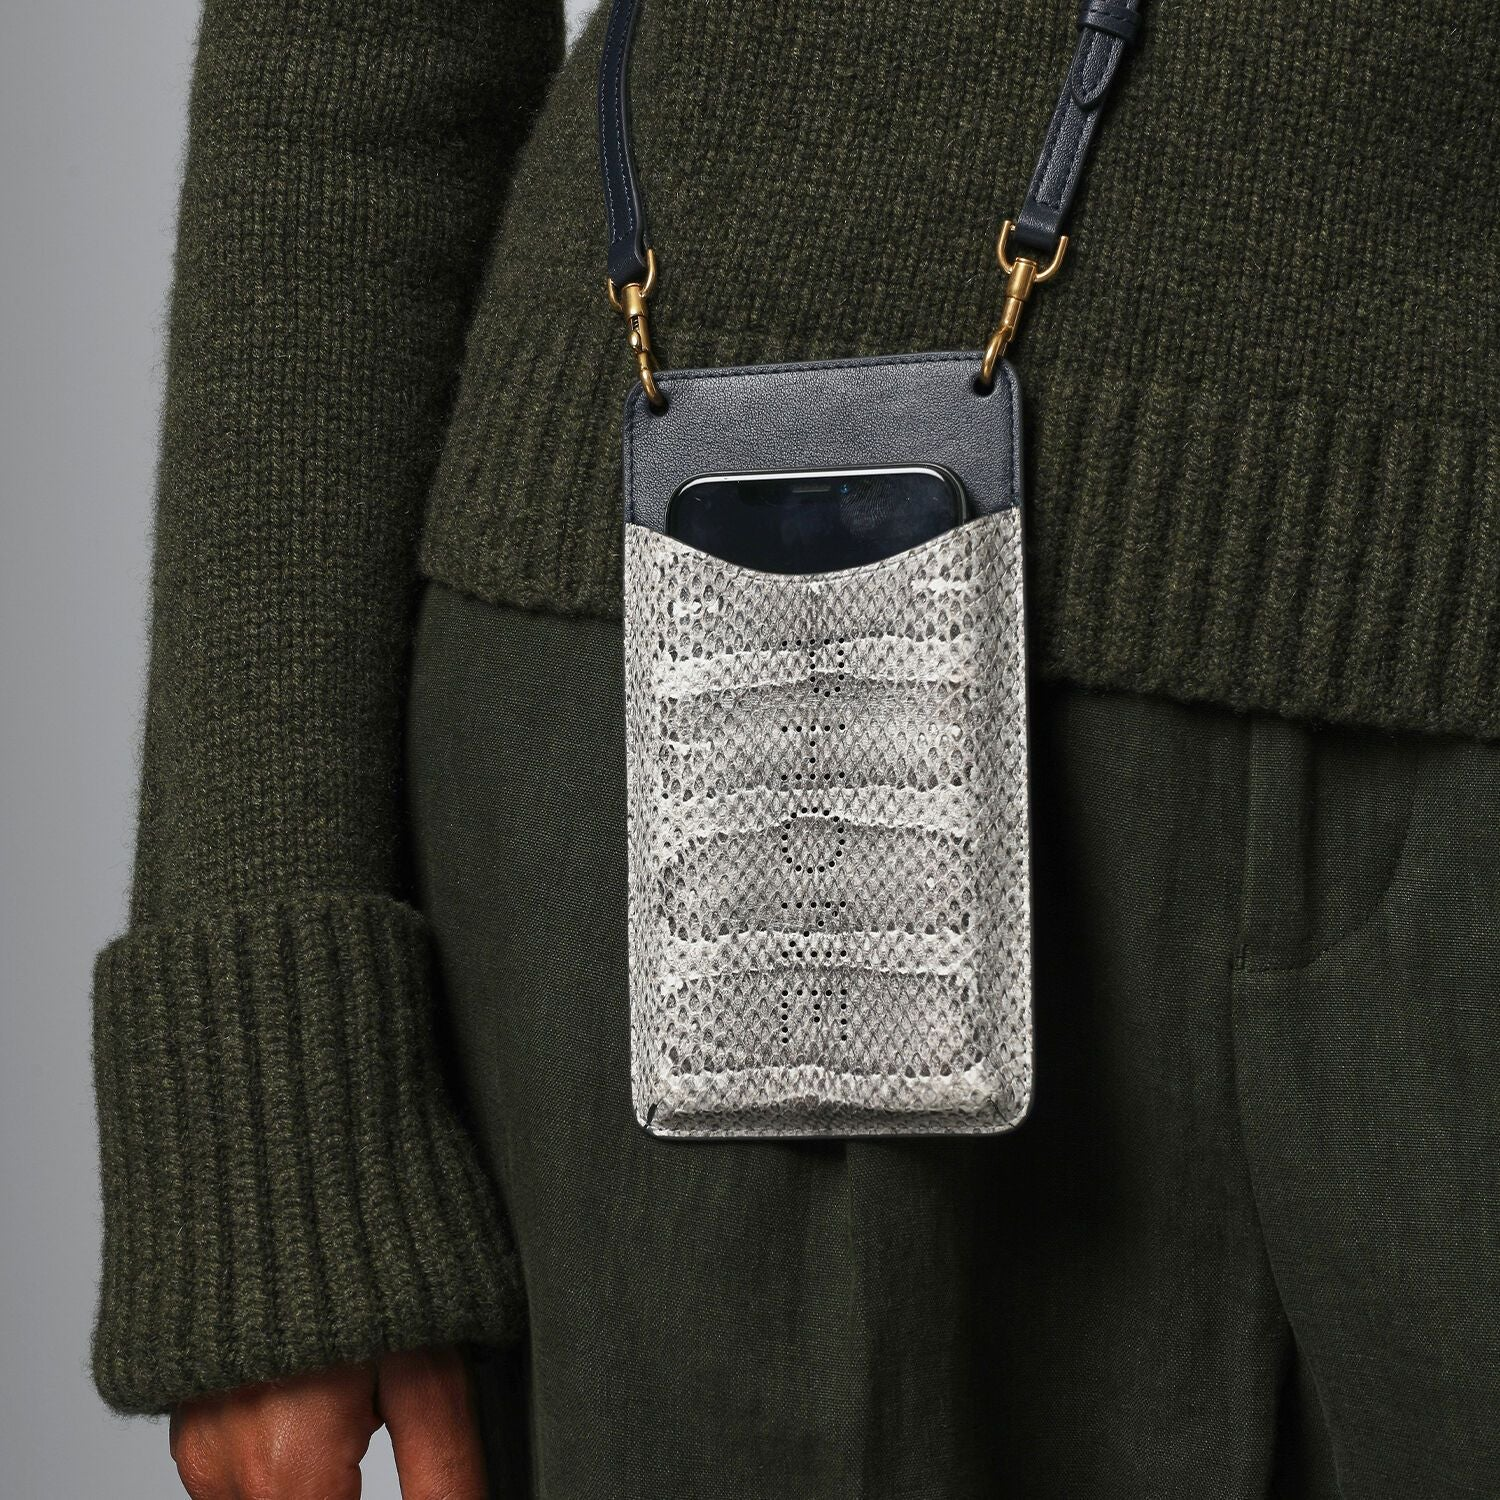 Phone Pouch on Strap